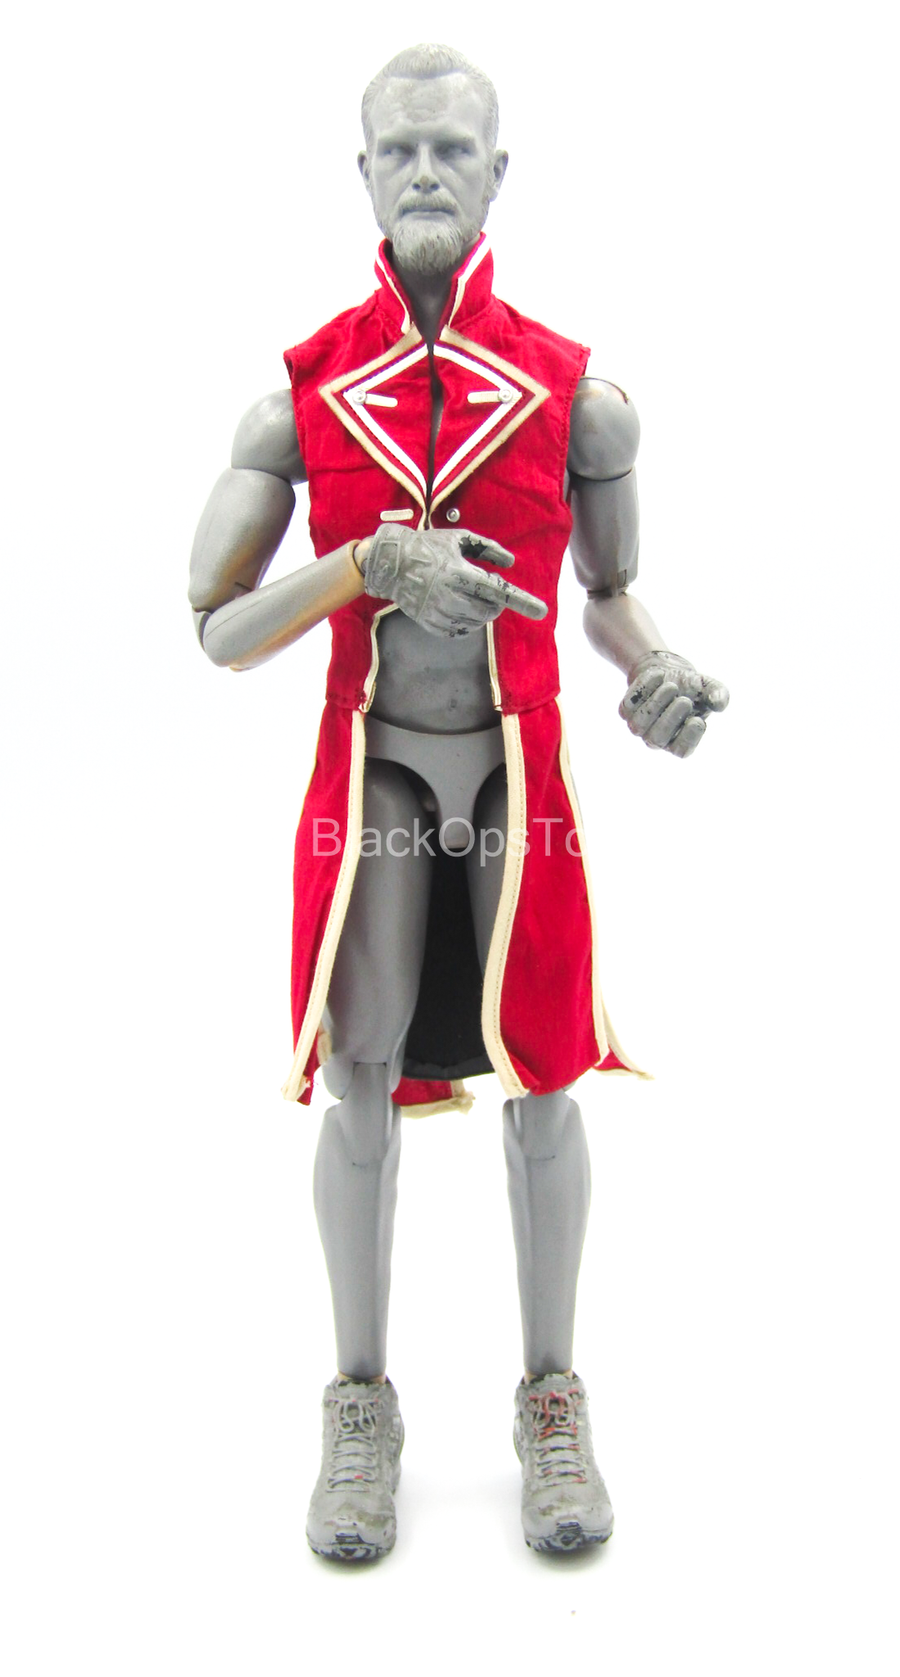 Assassins Creed Rogue - Shay - Red Tunic